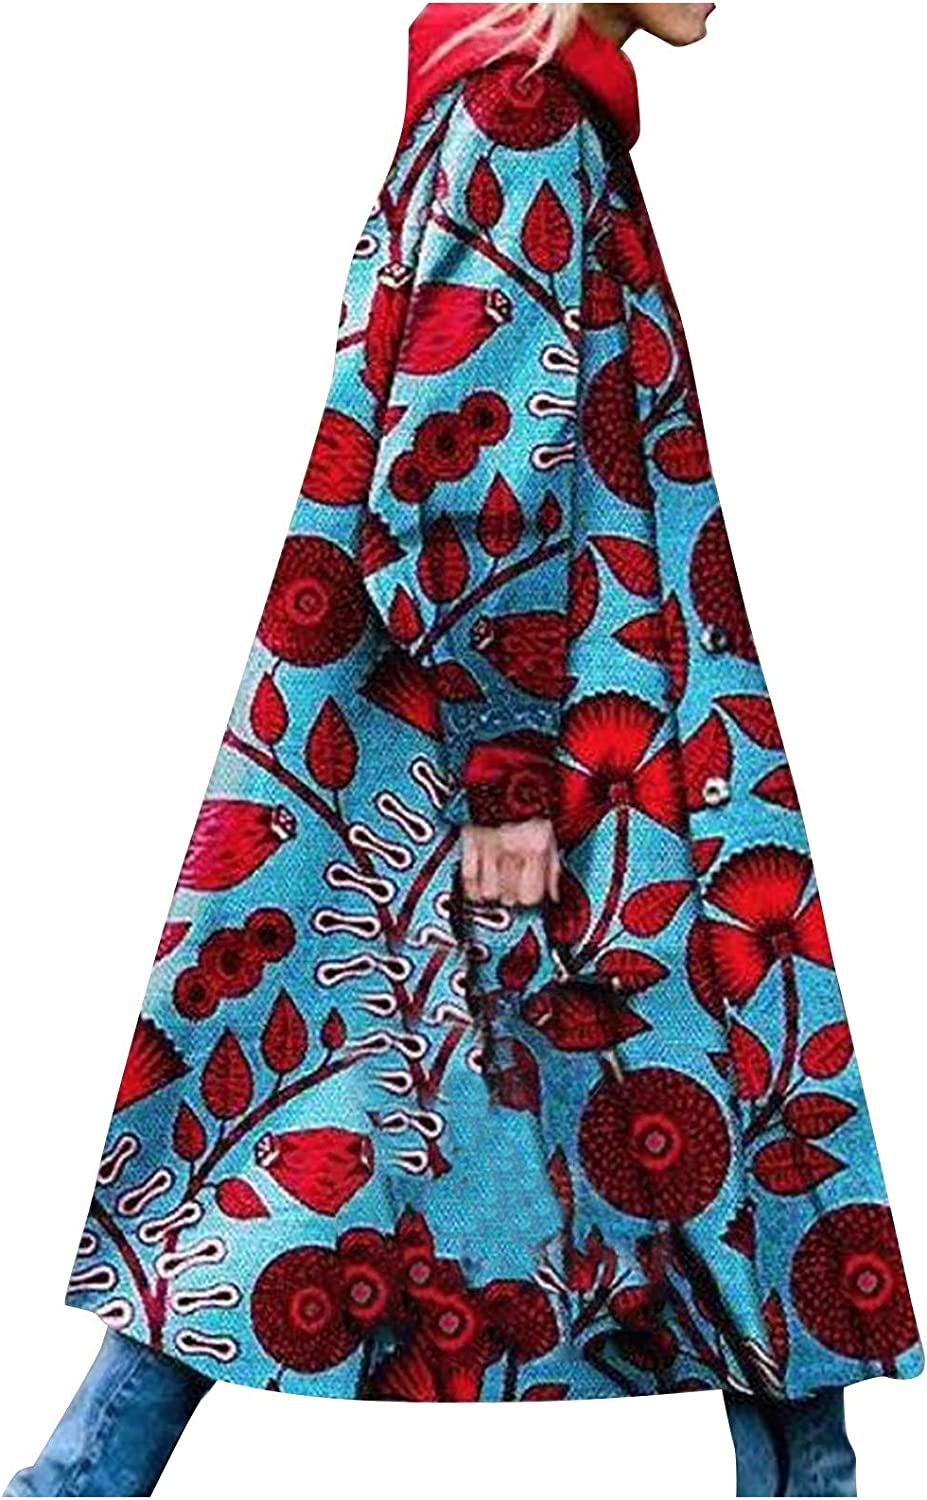 Forwelly Womens Long Trenchcoat Fashion Vintage Print Casual Long Sleeve Hooded Coat Winter Fall Jacket Outwear